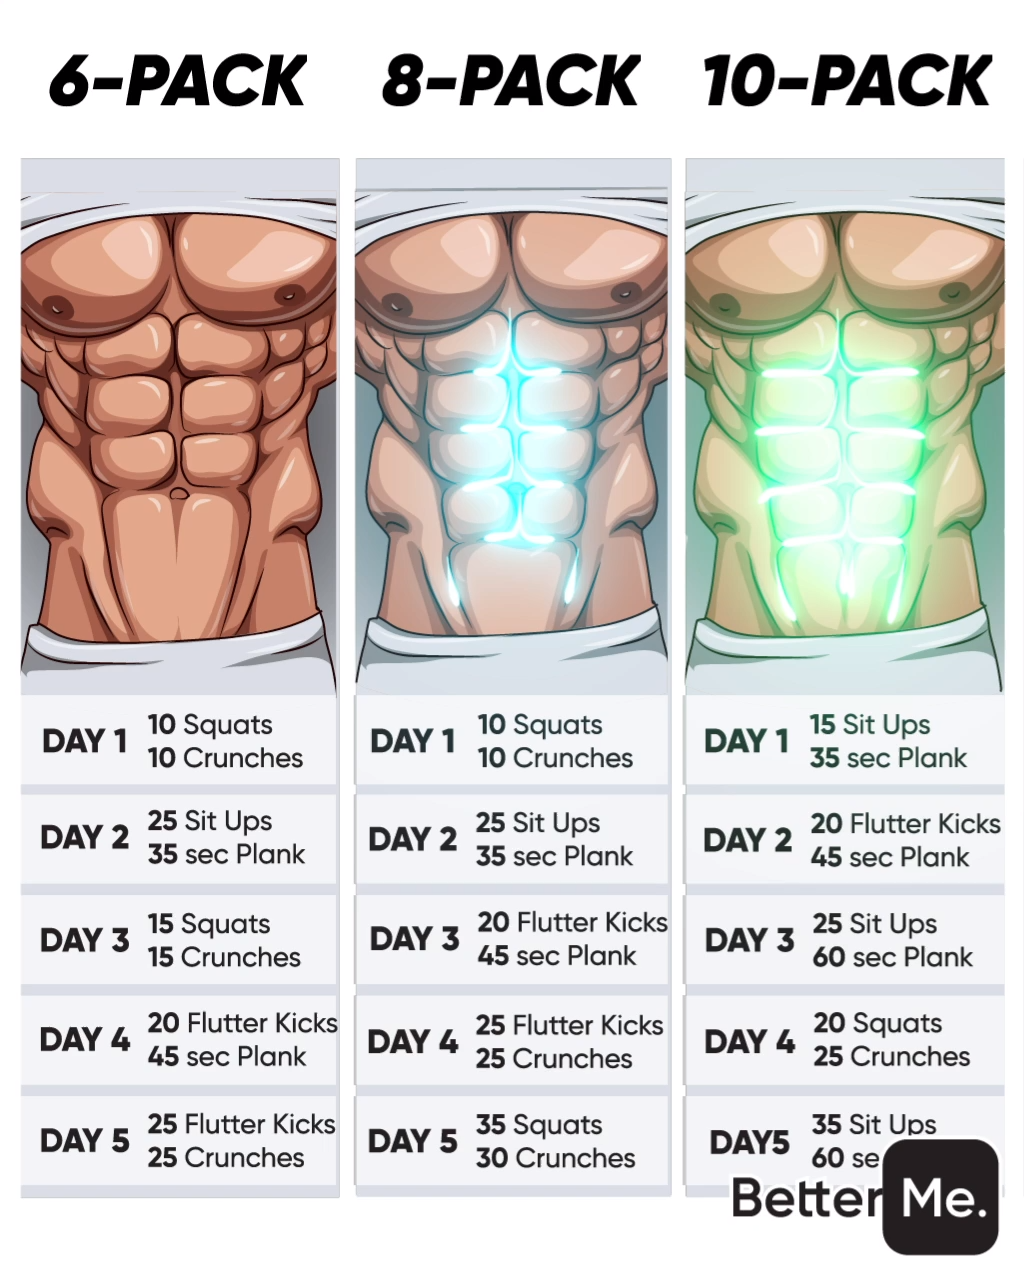 Custom Workout And Meal Plan For Effective Weight Loss! - Fitness Plans - Ideas of Fitness Plans #fi...